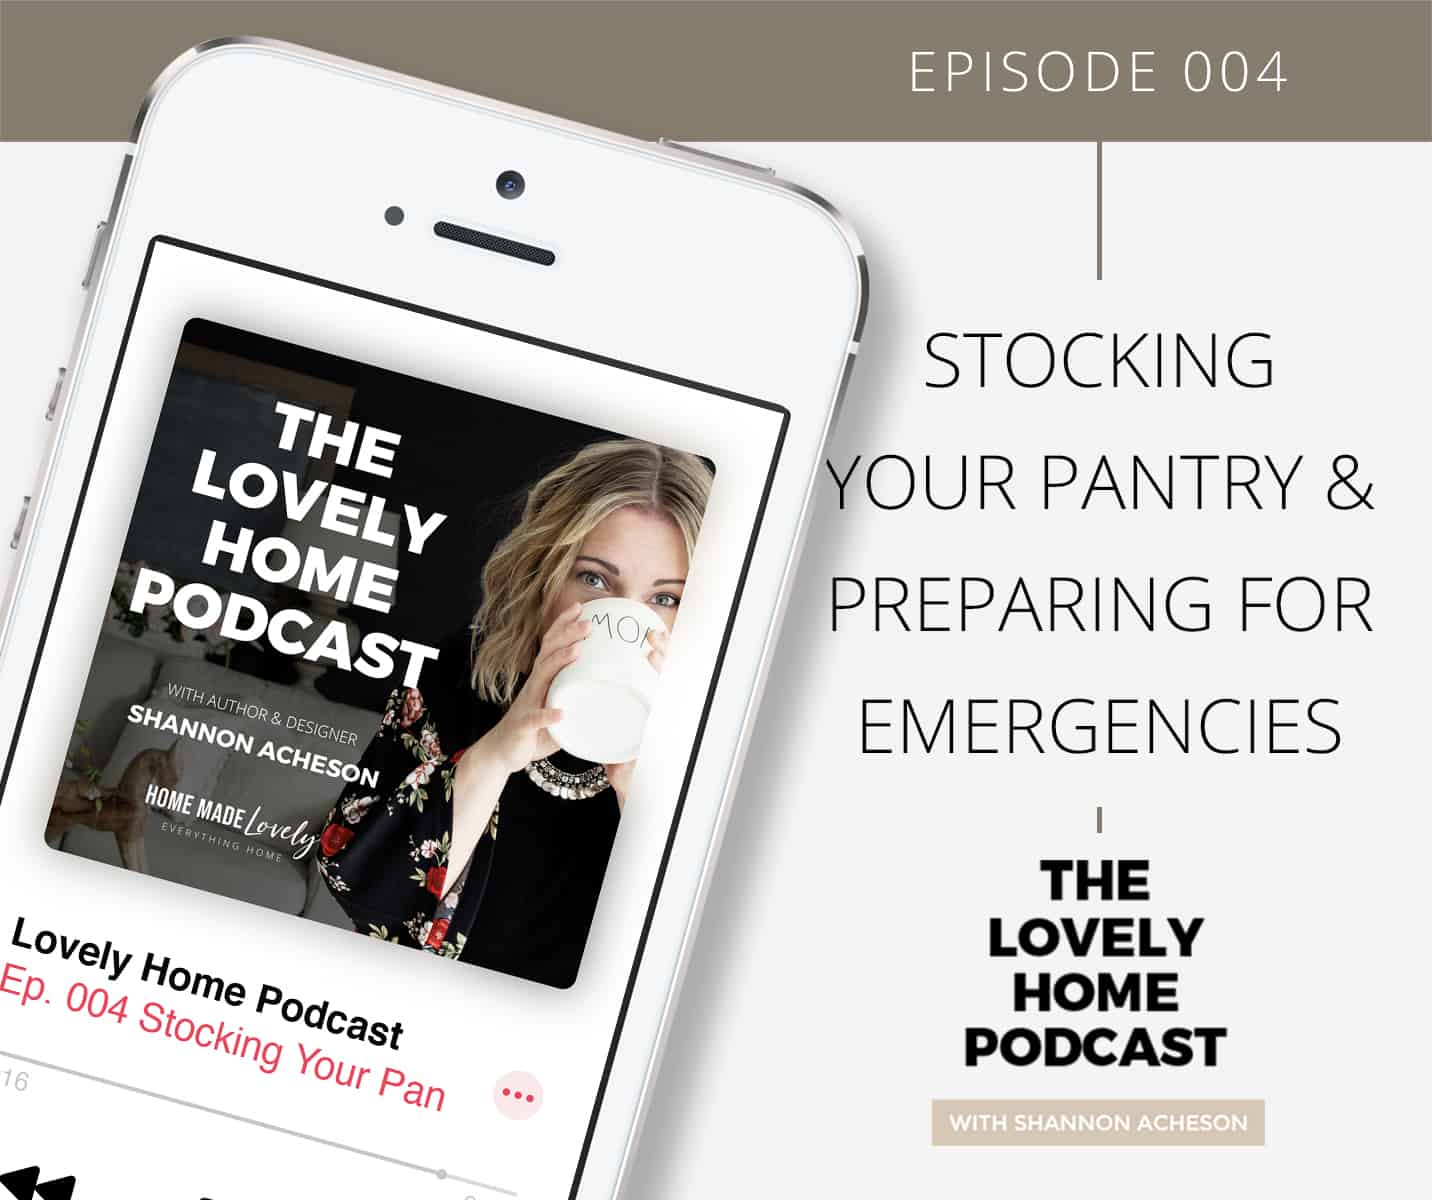 Stocking Your Pantry & Preparing for Emergencies